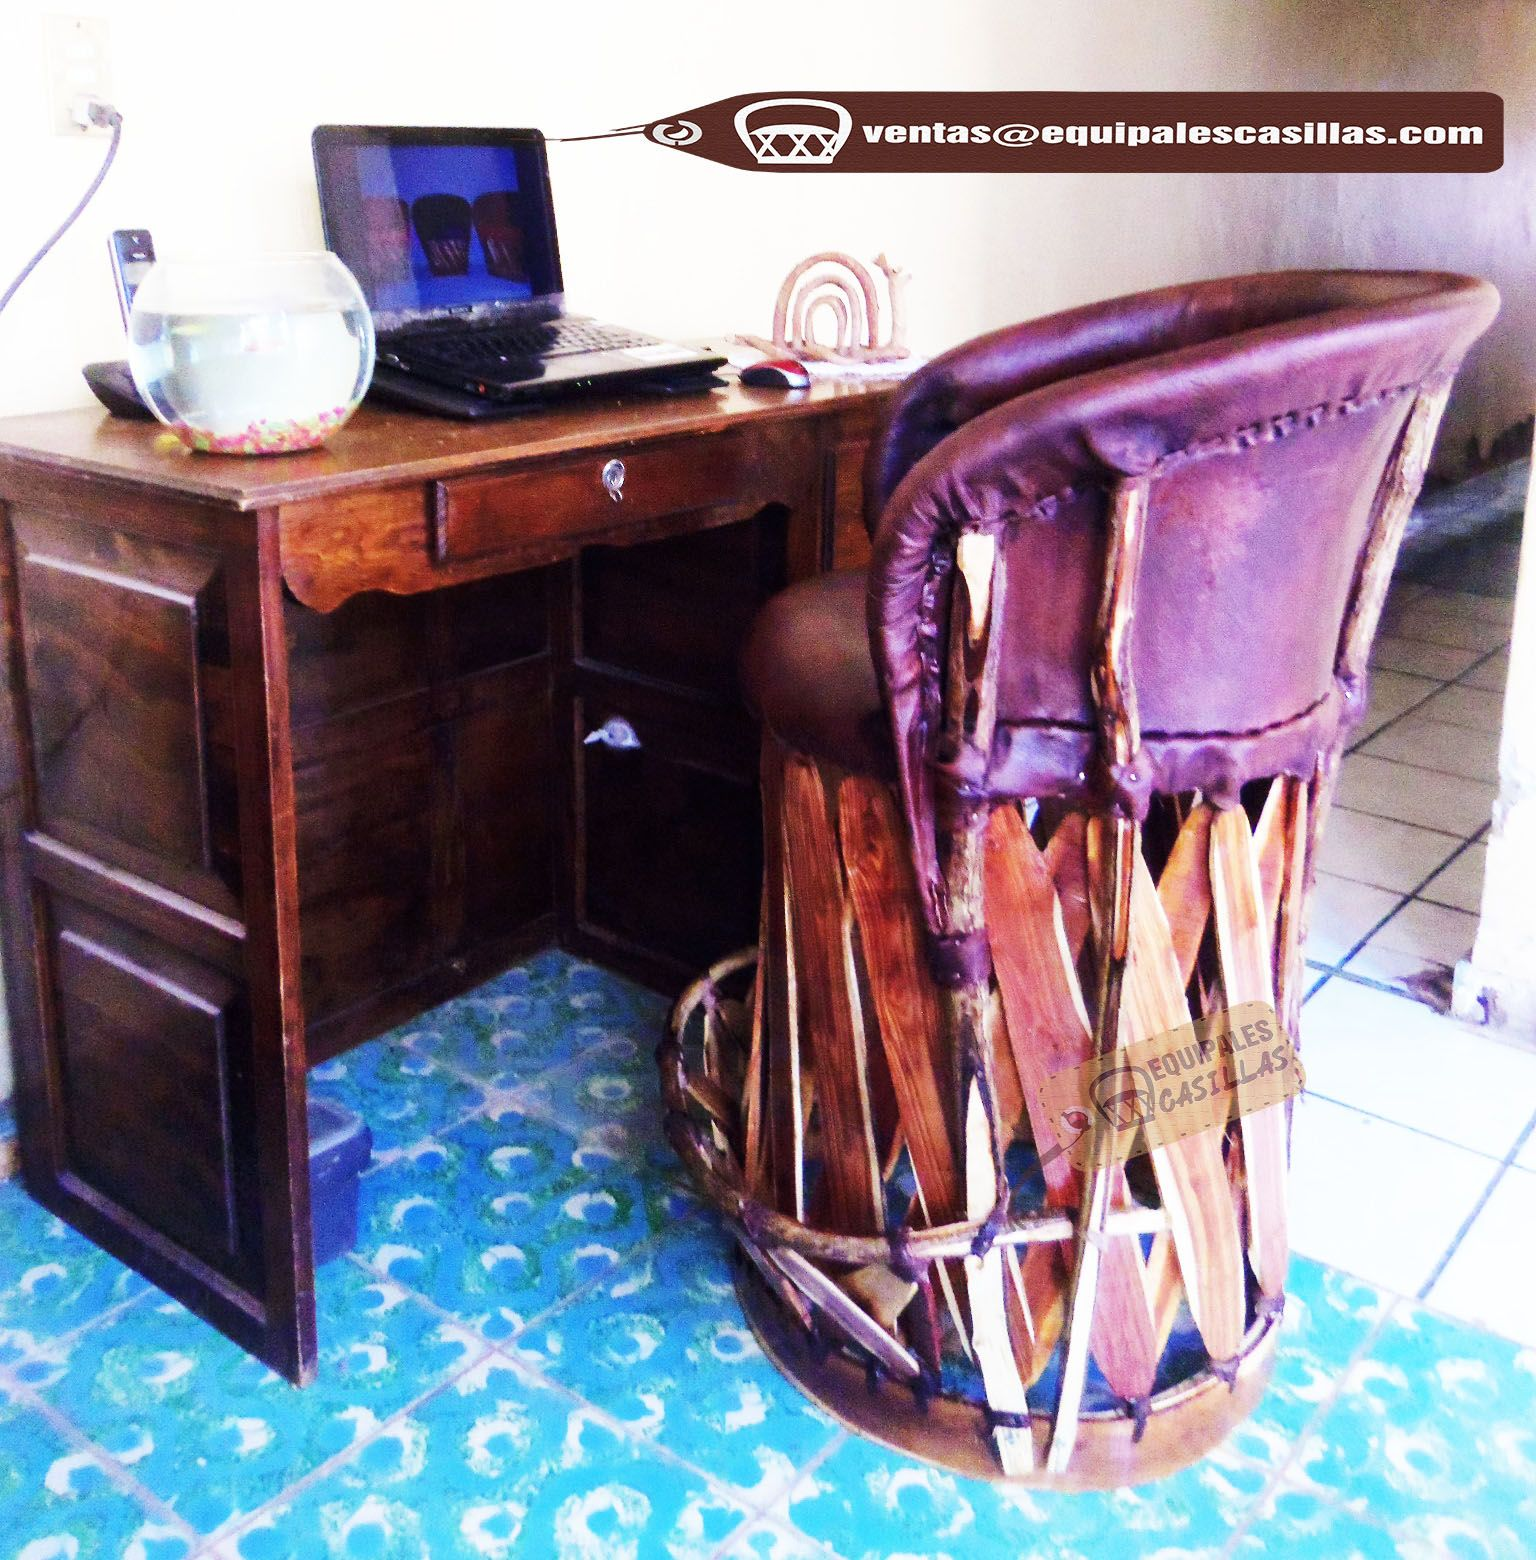 Equipales Muebles De Calidad Equipales Pinterest # Muebles Joseph And Pool